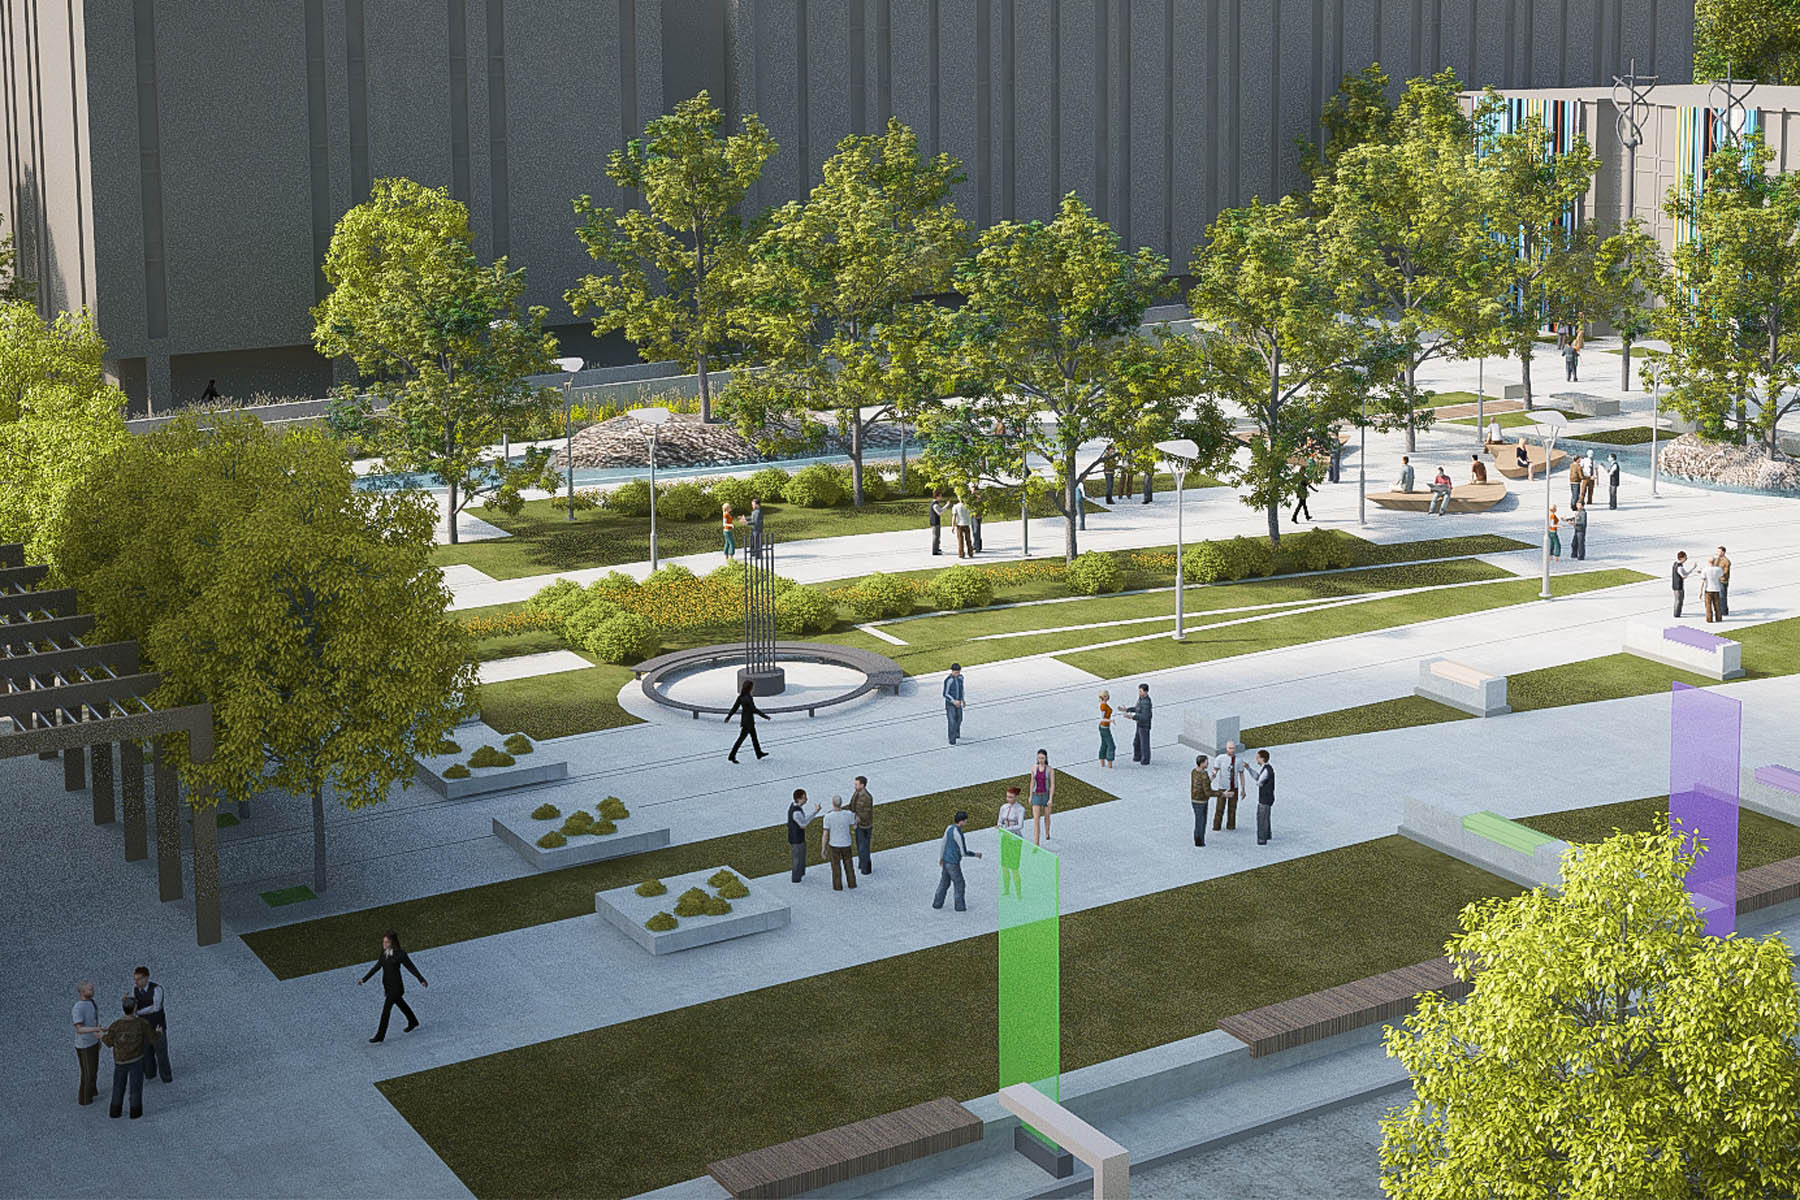 Rendering of courtyard space with paved walkways, grassy areas, trees, and bench seating